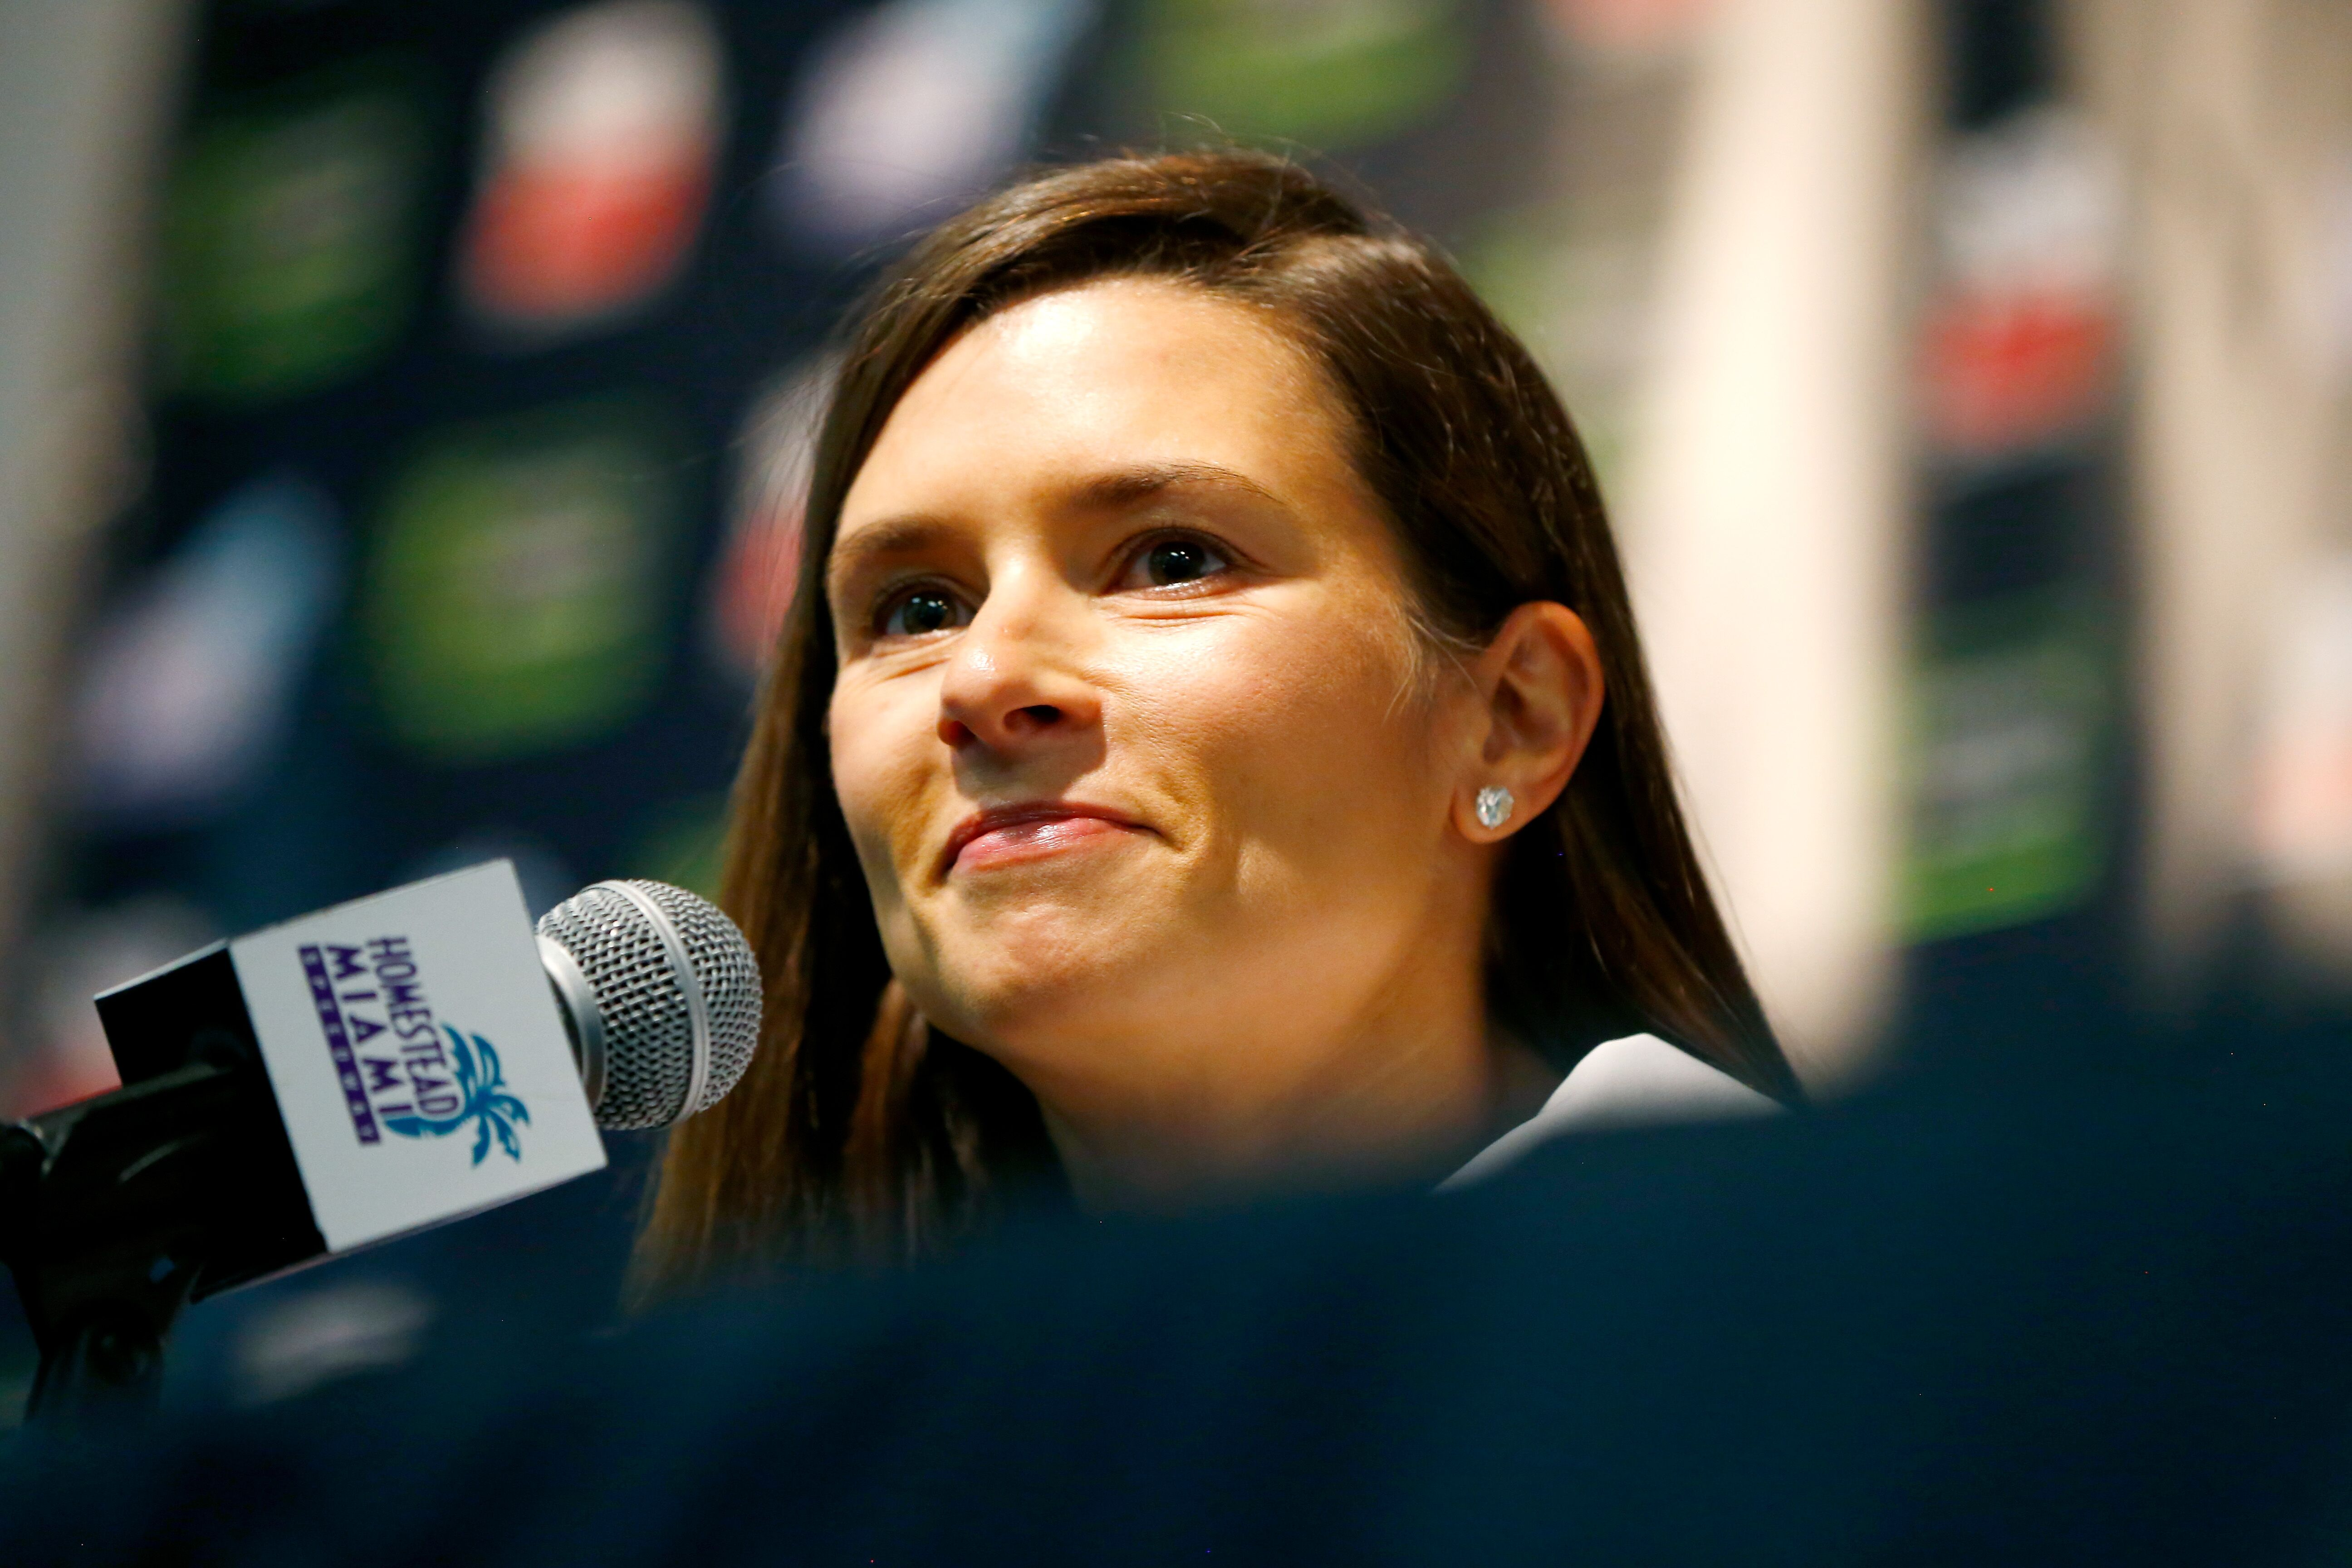 NASCAR: Chip Ganassi Racing rule out Danica Patrick for 2018 races